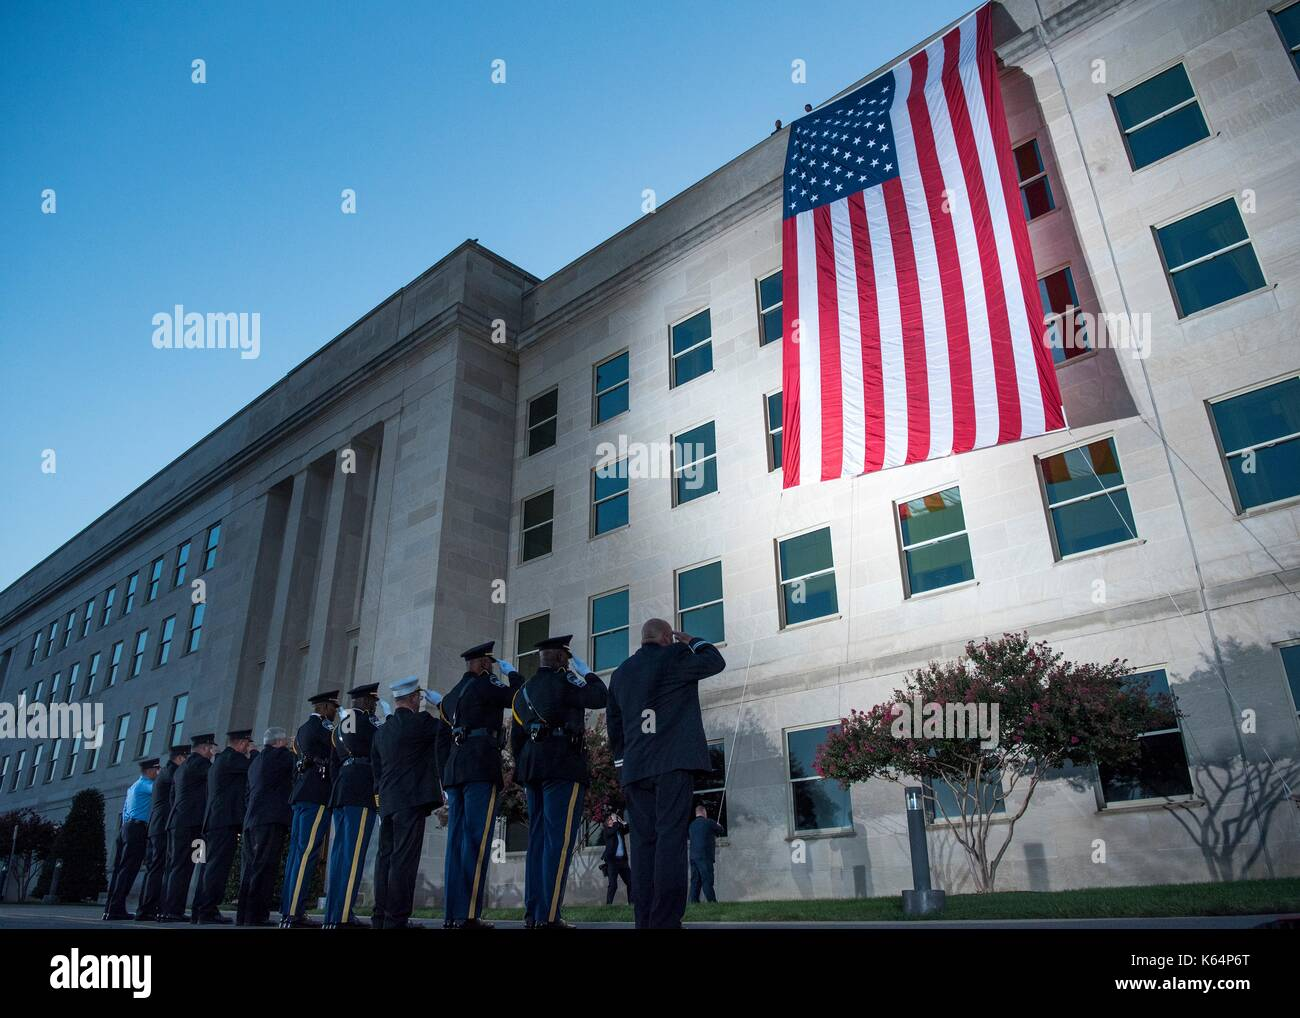 Arlington, United States Of America. 11th Sep, 2017. First Responders salute a large American flag as it is unfurled over the west side of the Pentagon at sunrise in preparation for an the ceremony commemorating the anniversary of the 9/11 terrorist attacks at the Pentagon September 11, 2017 in Arlington, Virginia. The aircraft impacted the building where the flag is unfurled. Credit: Planetpix/Alamy Live News - Stock Image